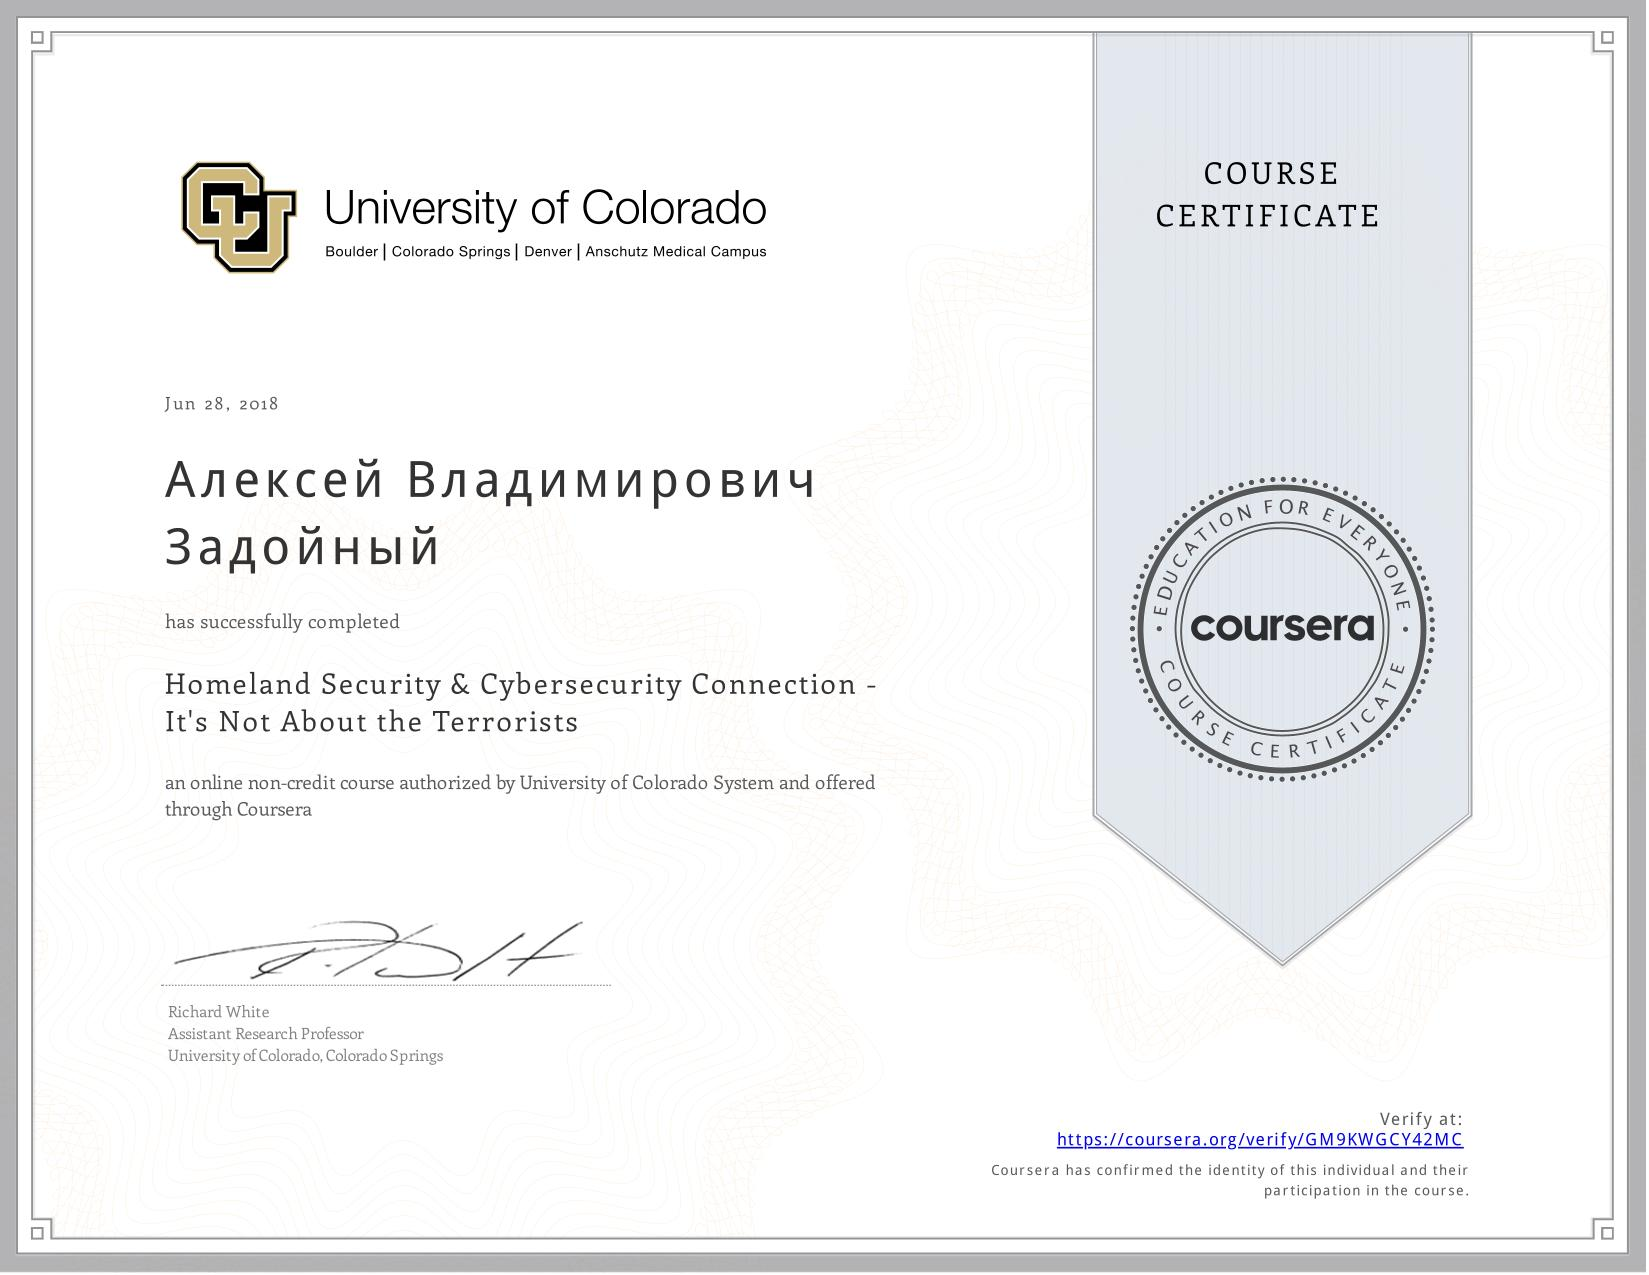 View certificate for Алексей Владимирович Задойный, Homeland Security & Cybersecurity Connection - It's Not About the Terrorists, an online non-credit course authorized by University of Colorado System and offered through Coursera